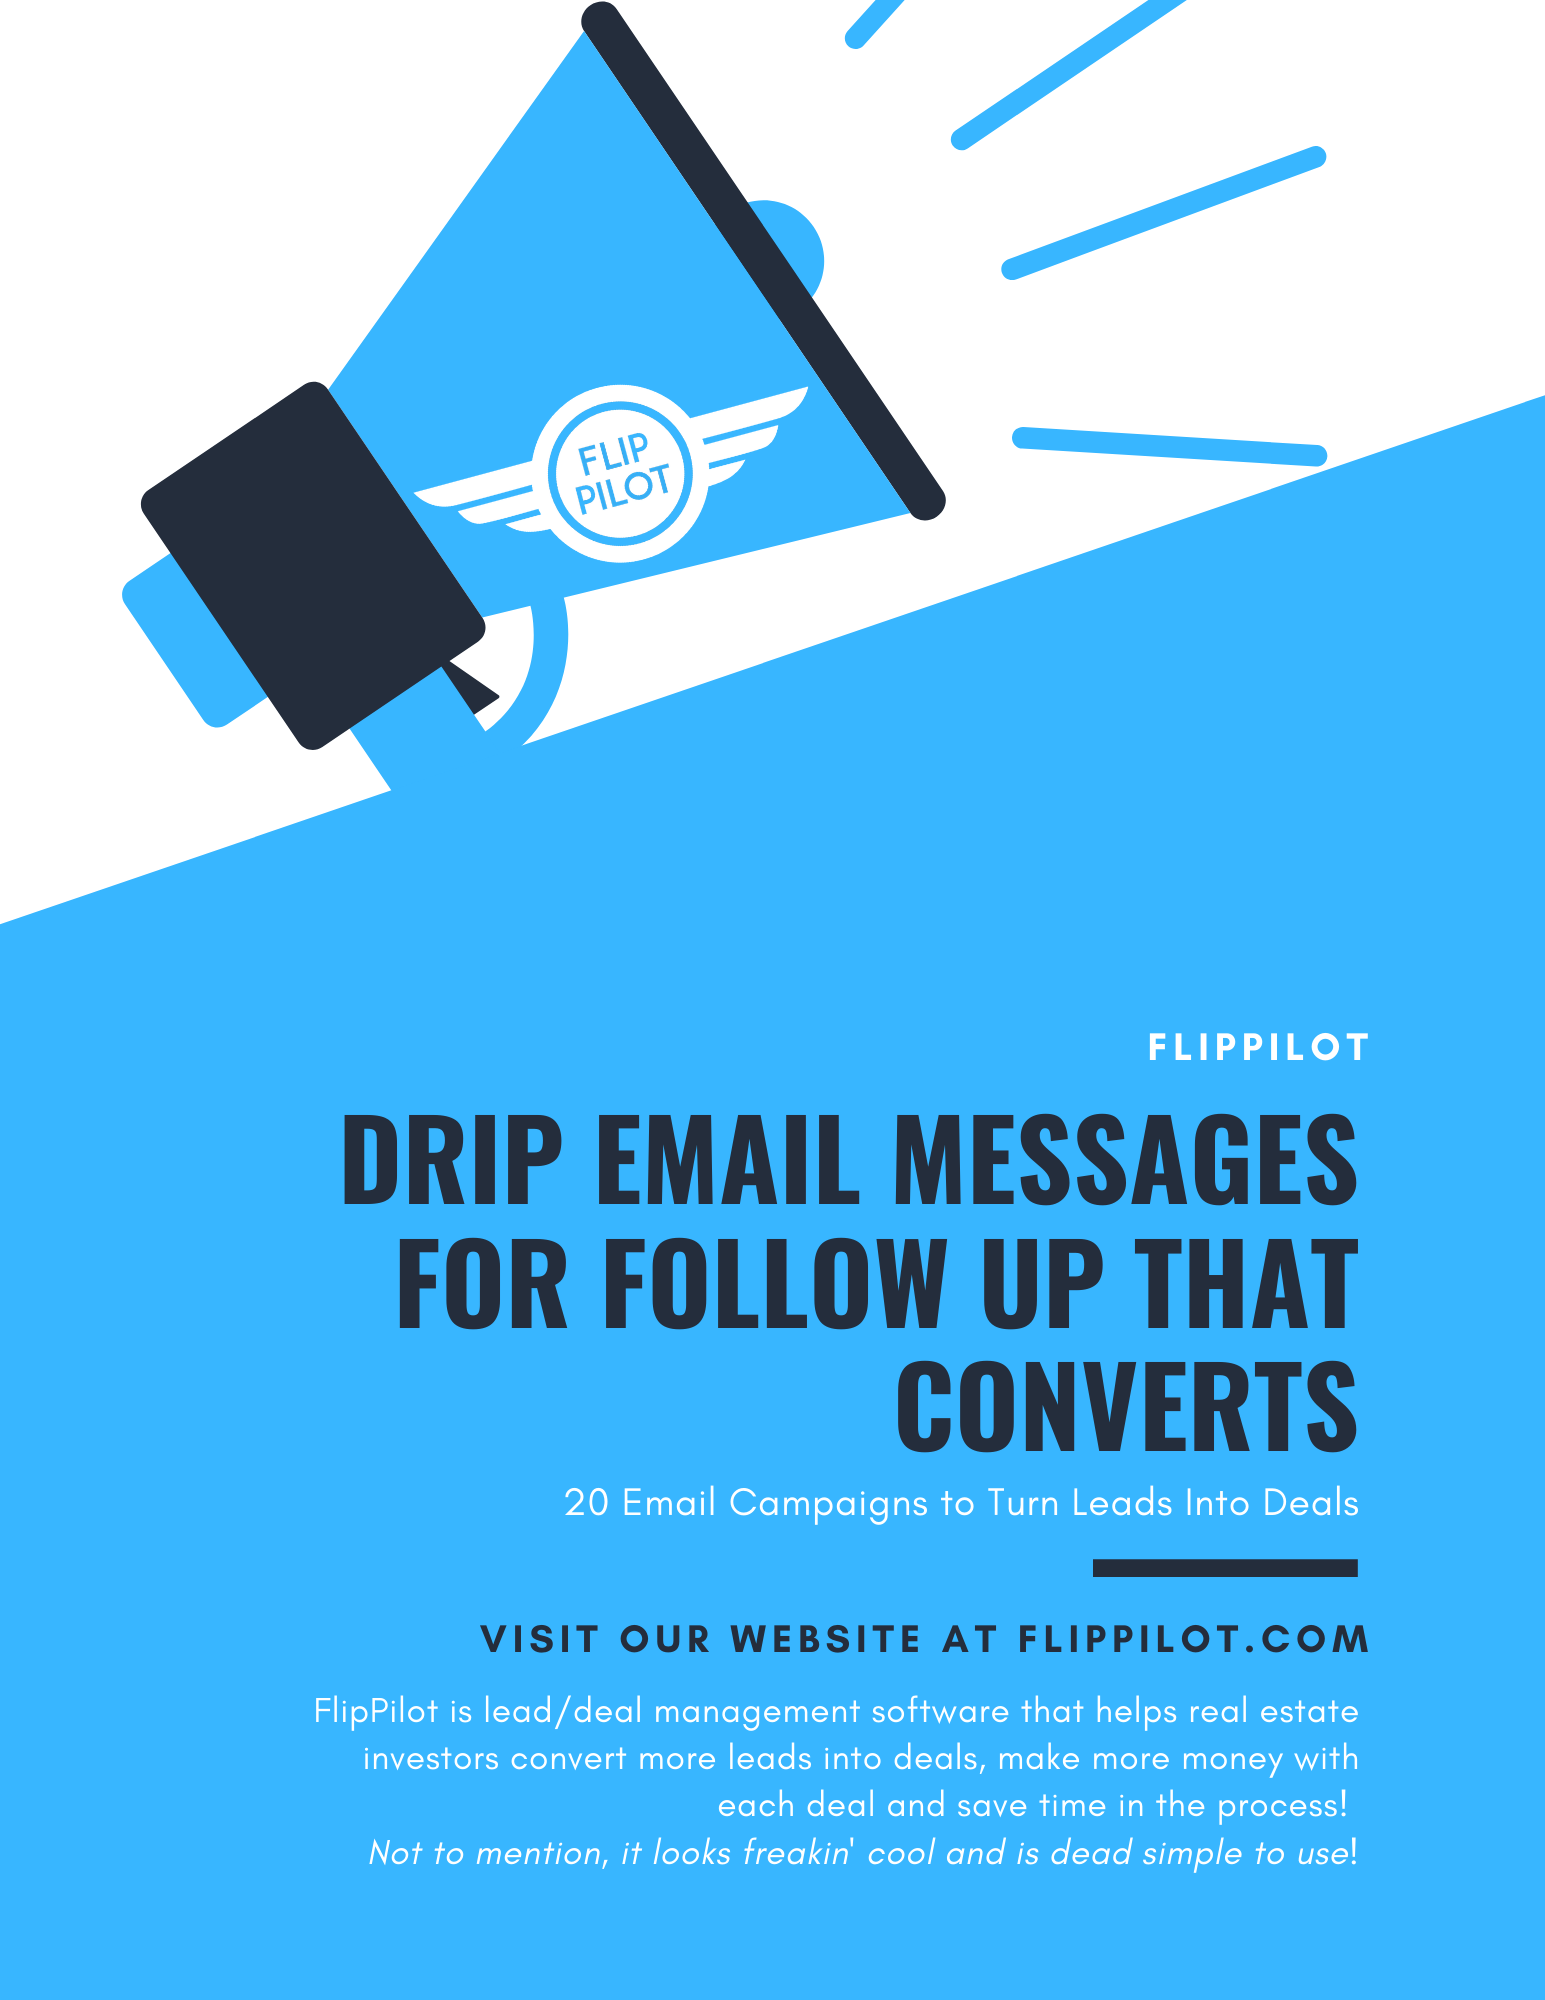 flippilot-drip-email-messages